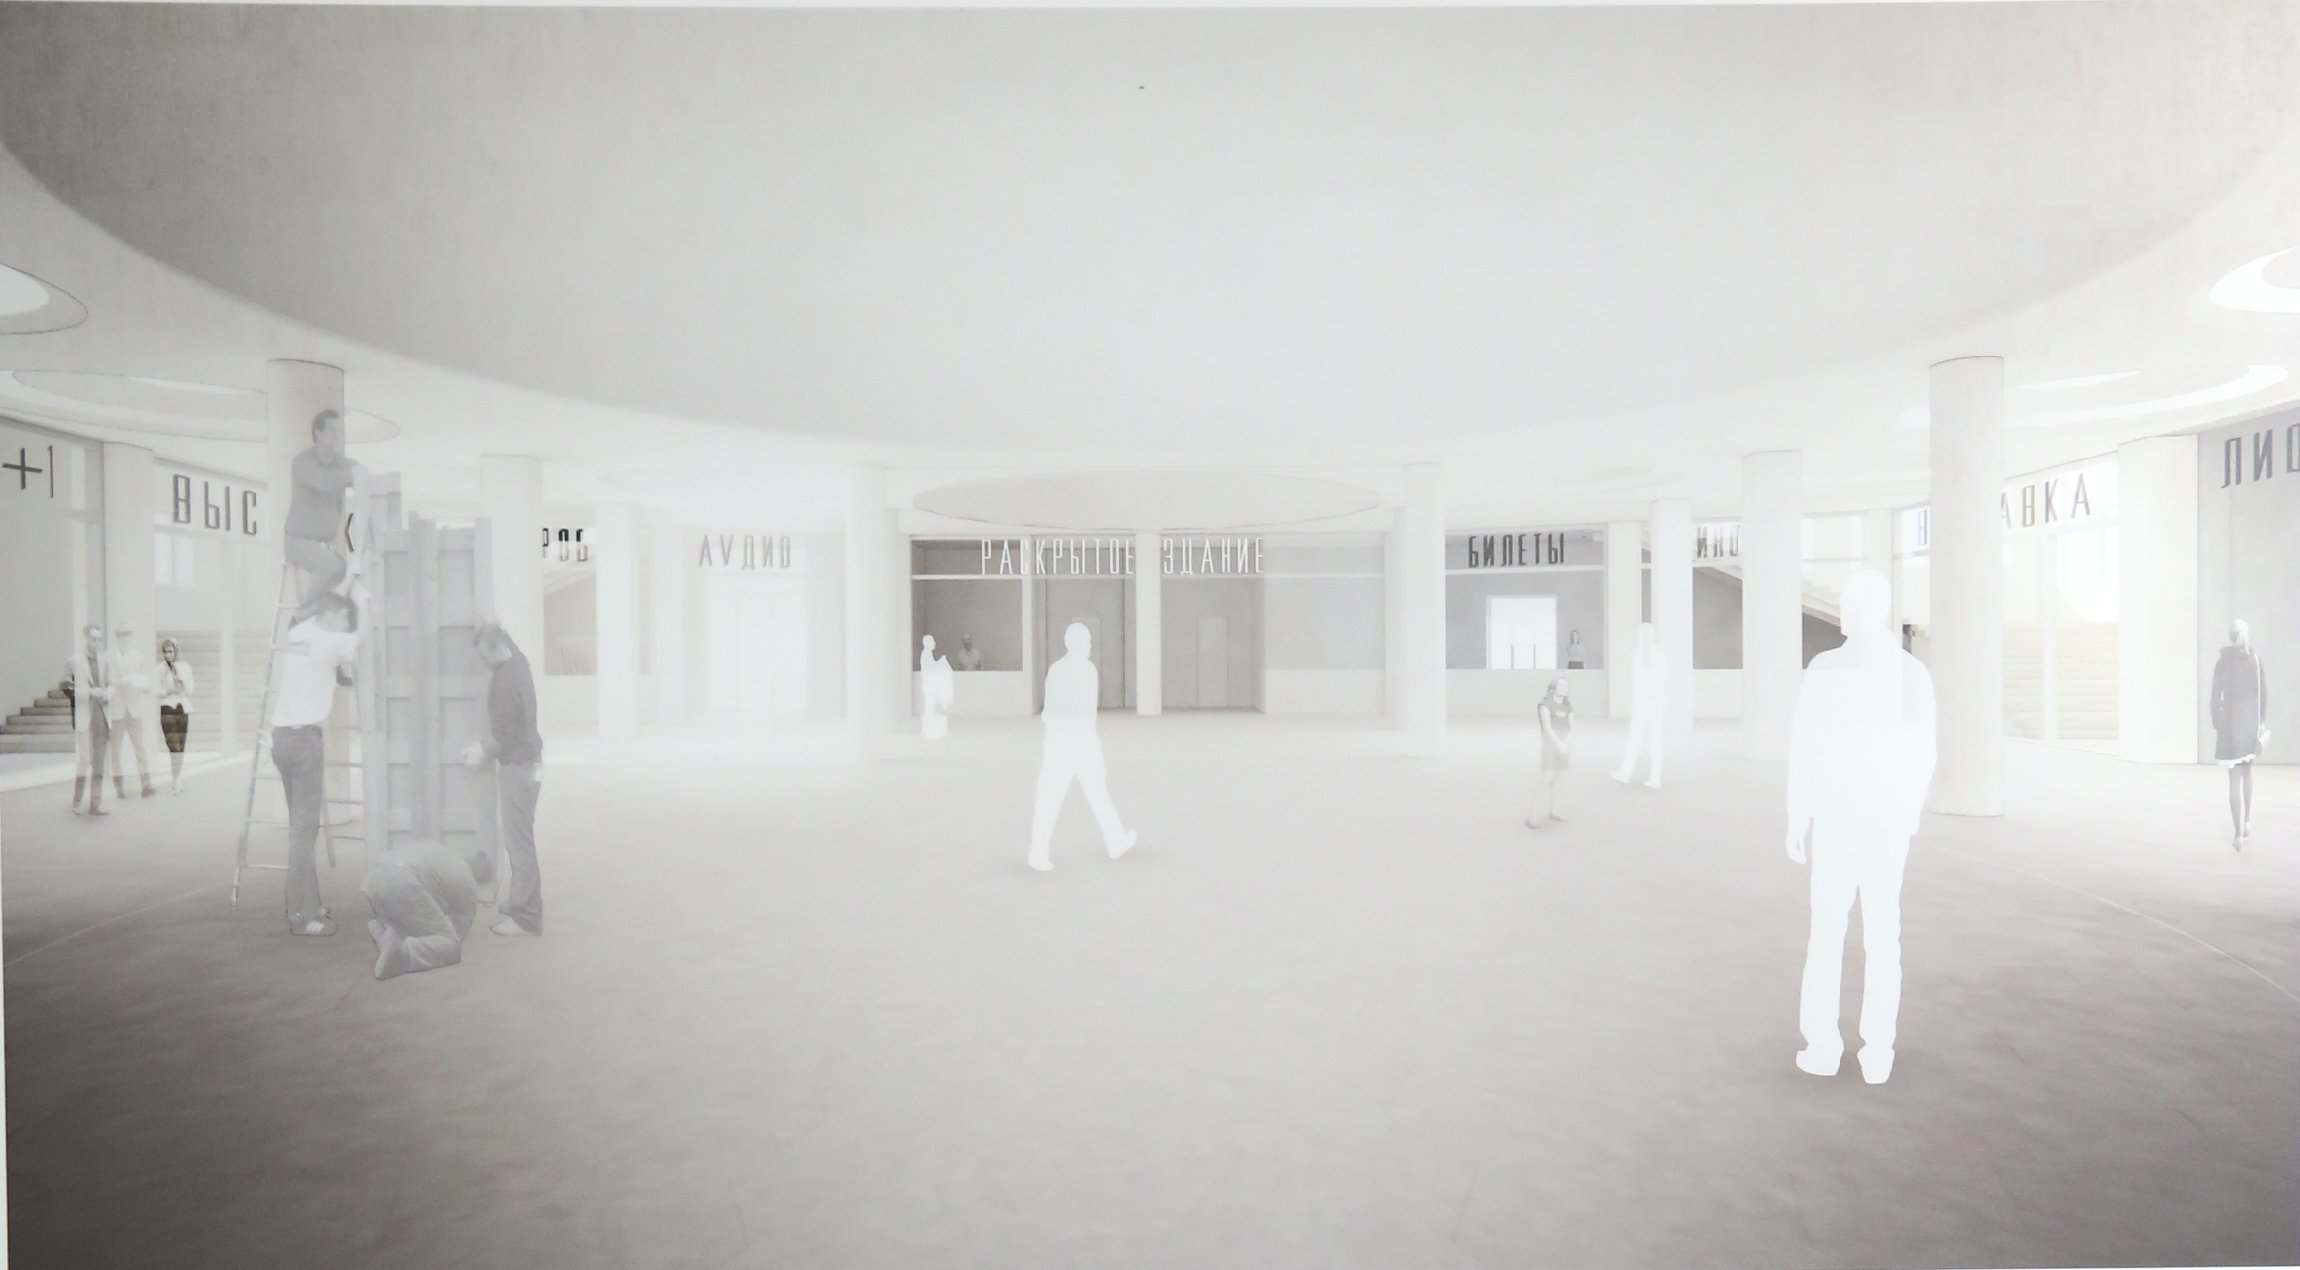 Model proposal for the new museum in the former cinema